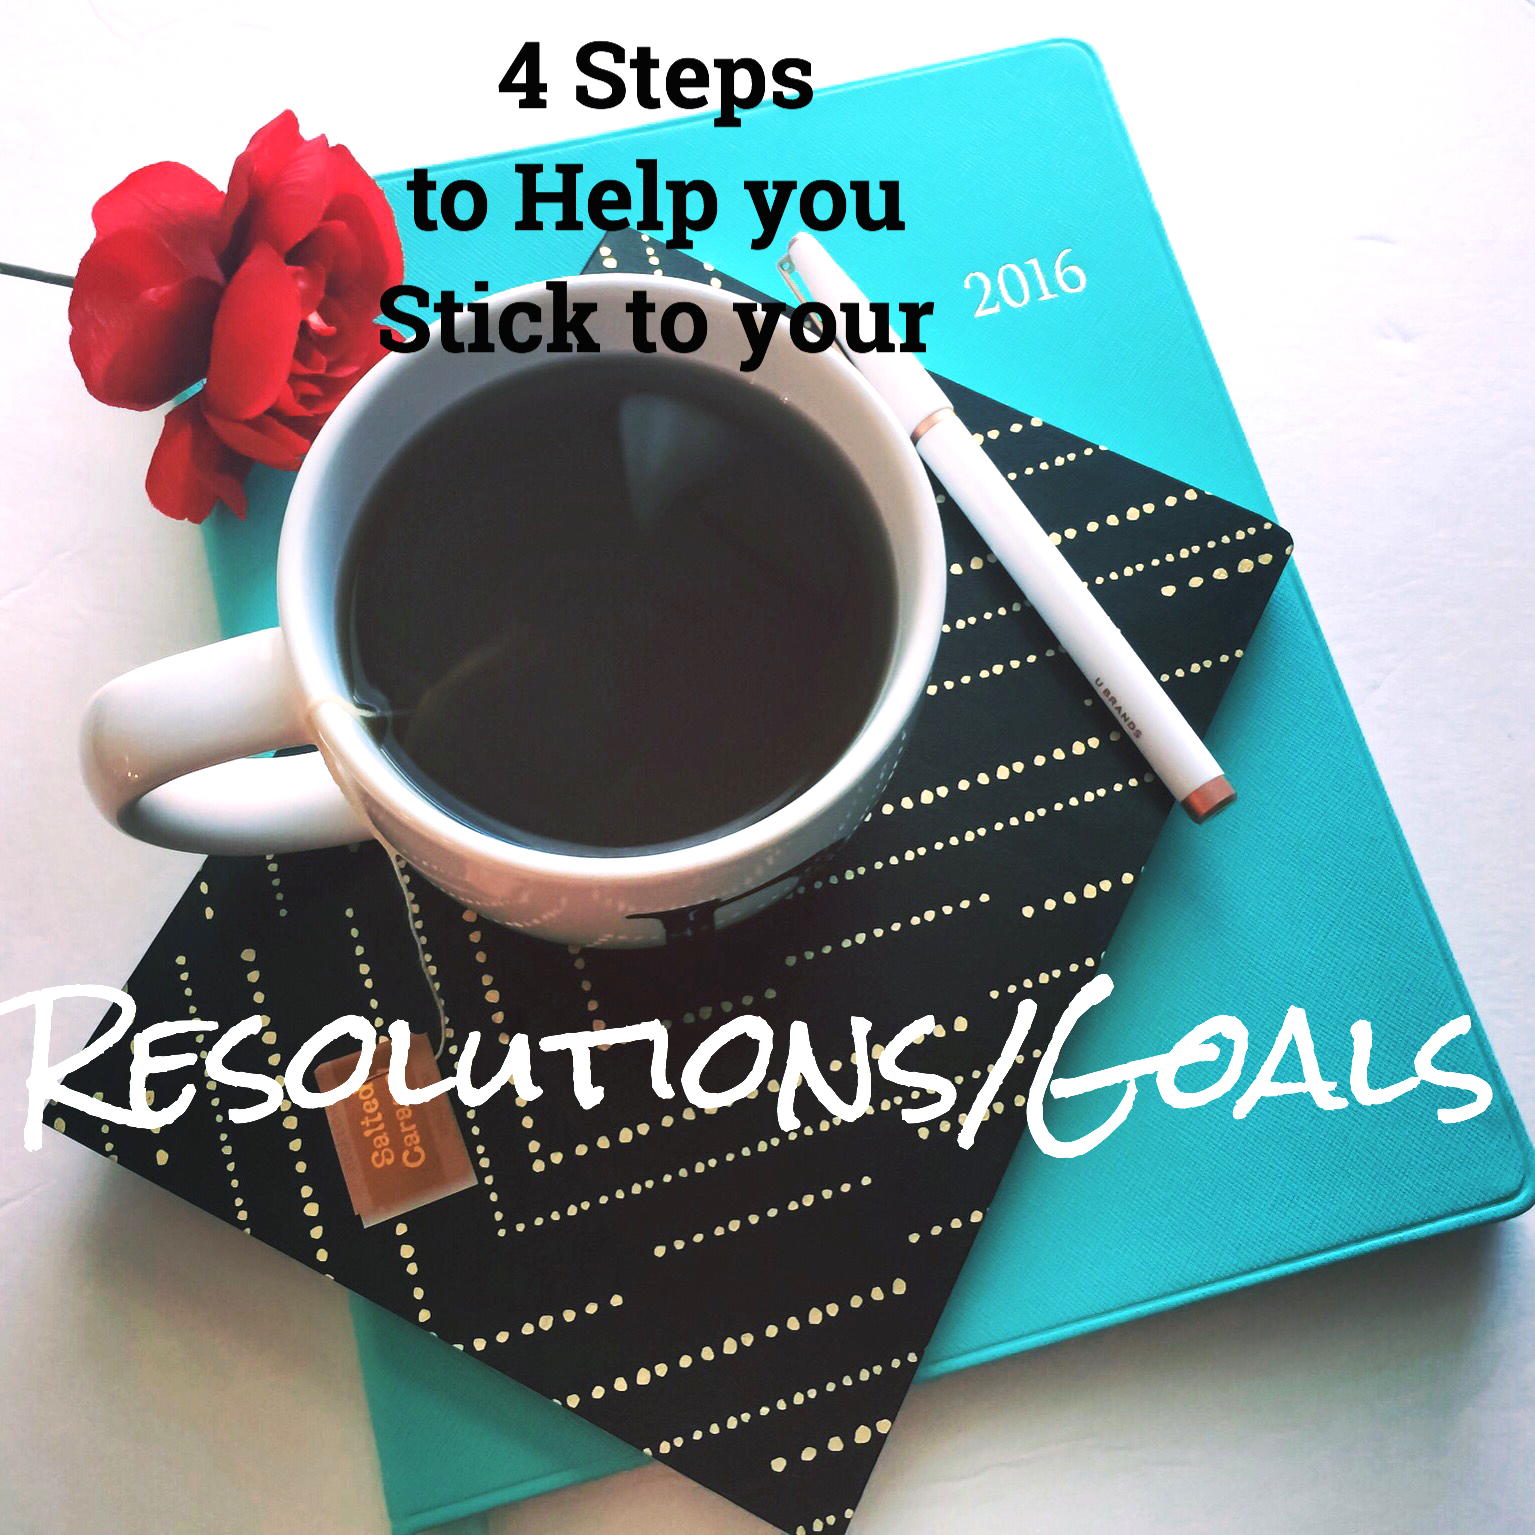 resolutions, goals, achieve resolutions, life, success, lifestyle blog, planners, journal, personal, achieve success, new years resolutions